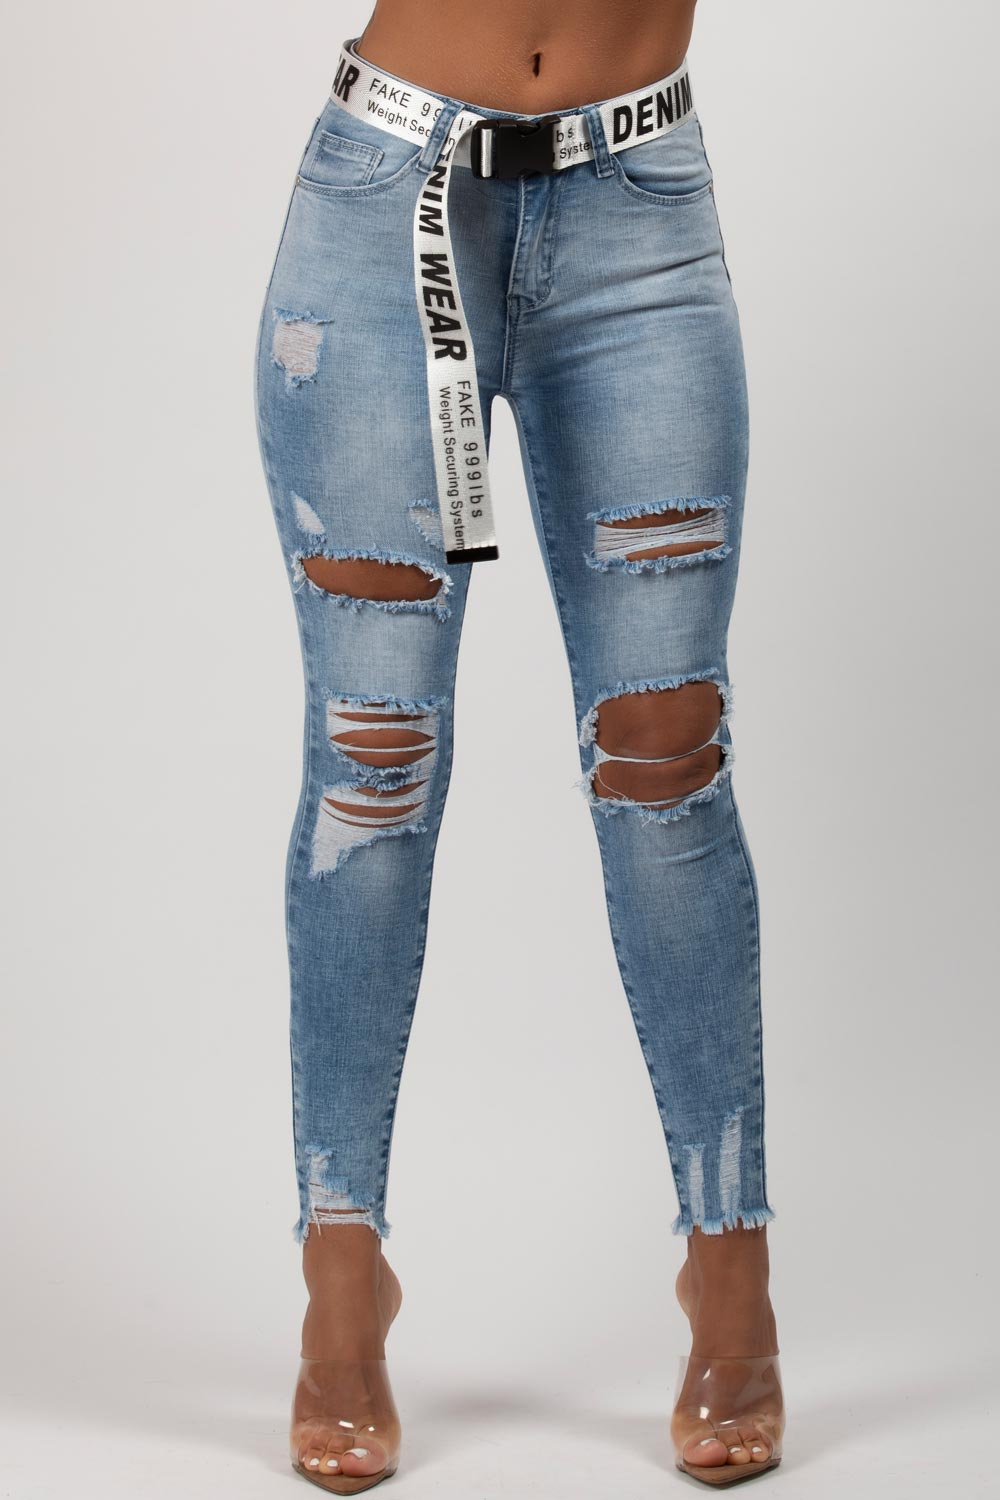 ripped jeans uk size 14